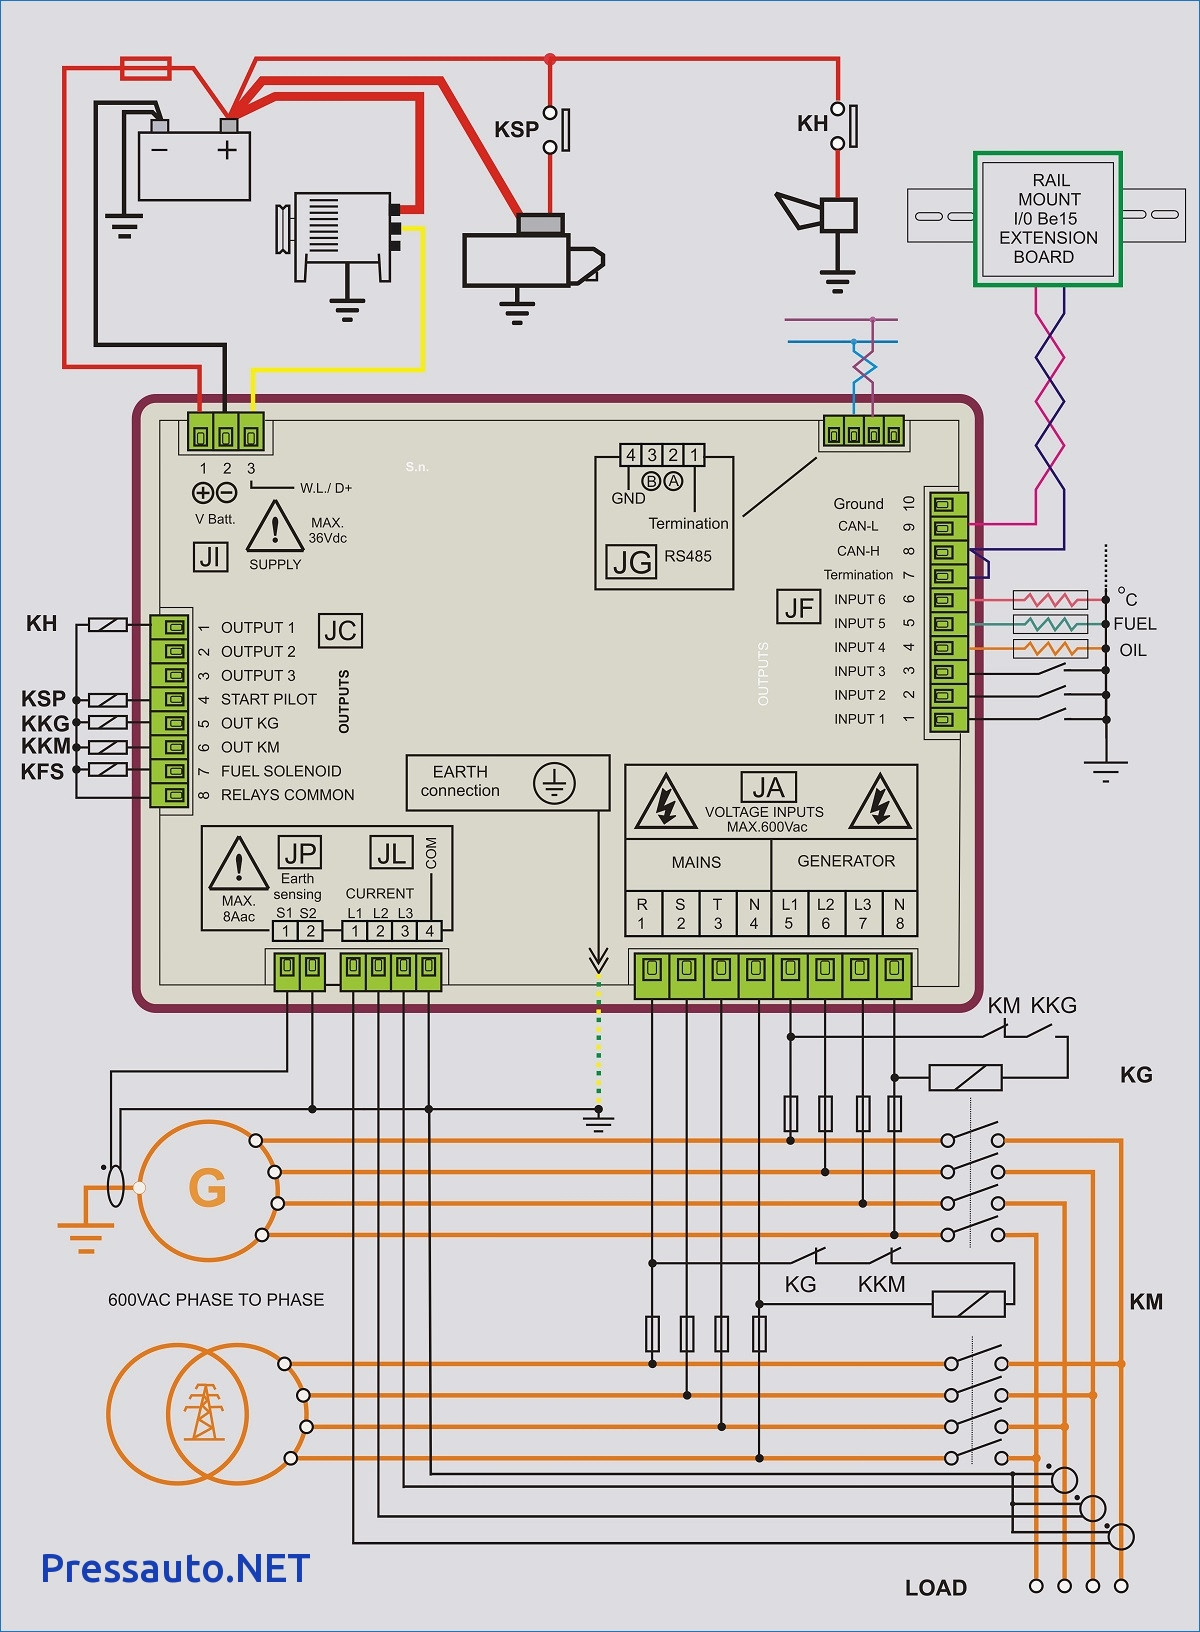 generac wiring diagram Collection-Wiring Diagram Standby Generator New Portable Generator Transfer Switch Wiring Diagram for Manual Generac 6-m